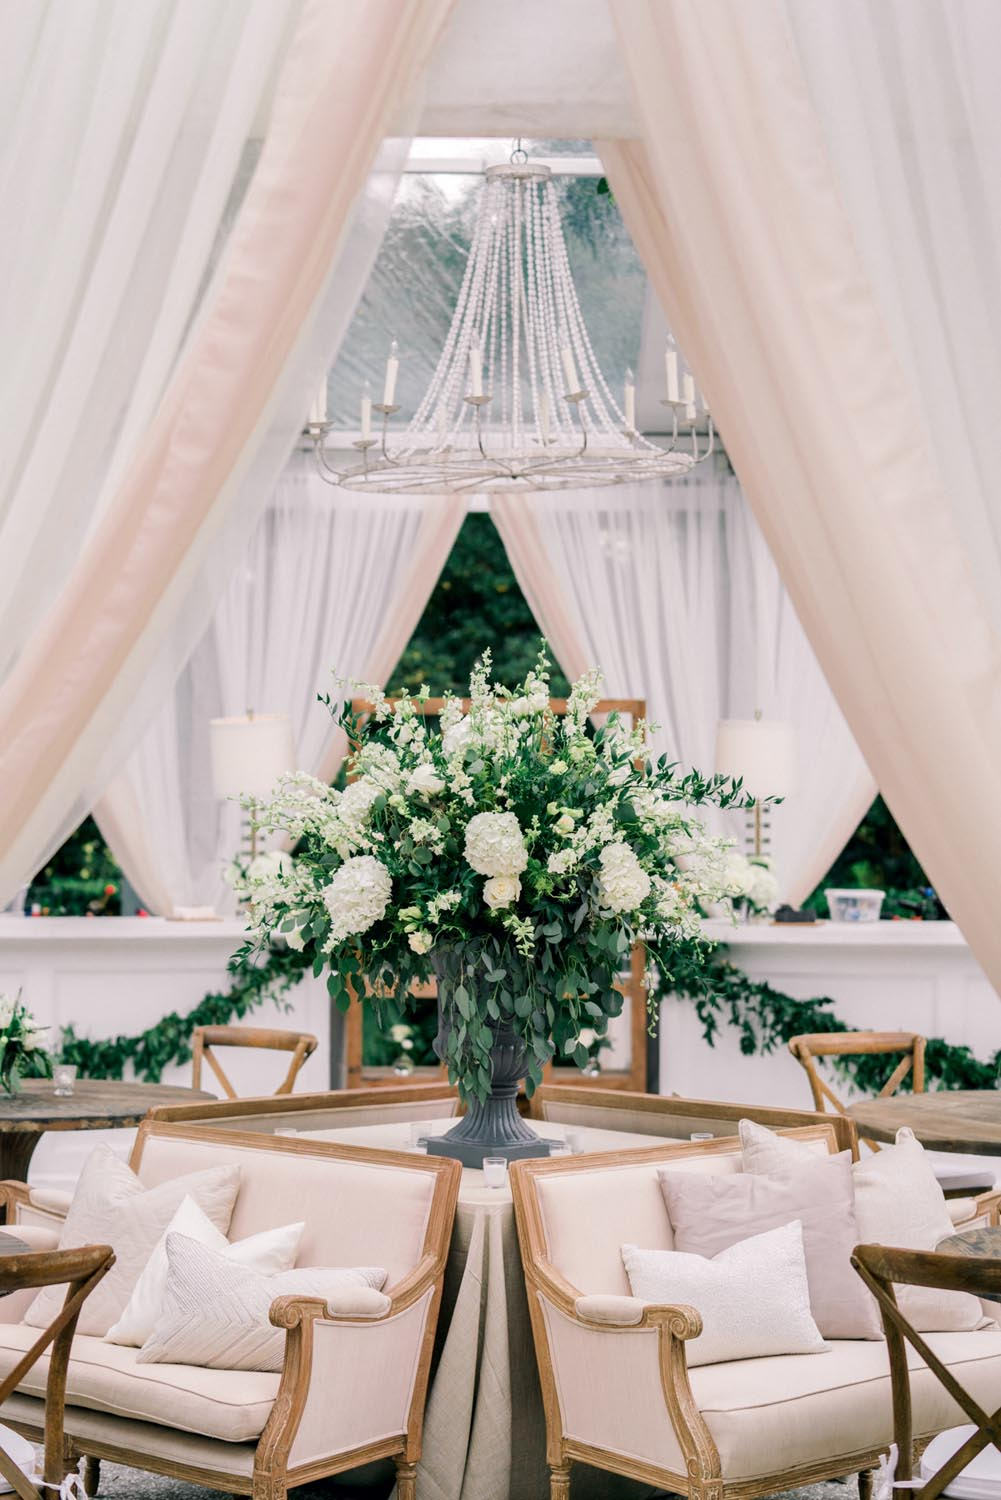 Lounge seating area with tall white centerpiece. Wedding planning and design by A Charleston Bride.